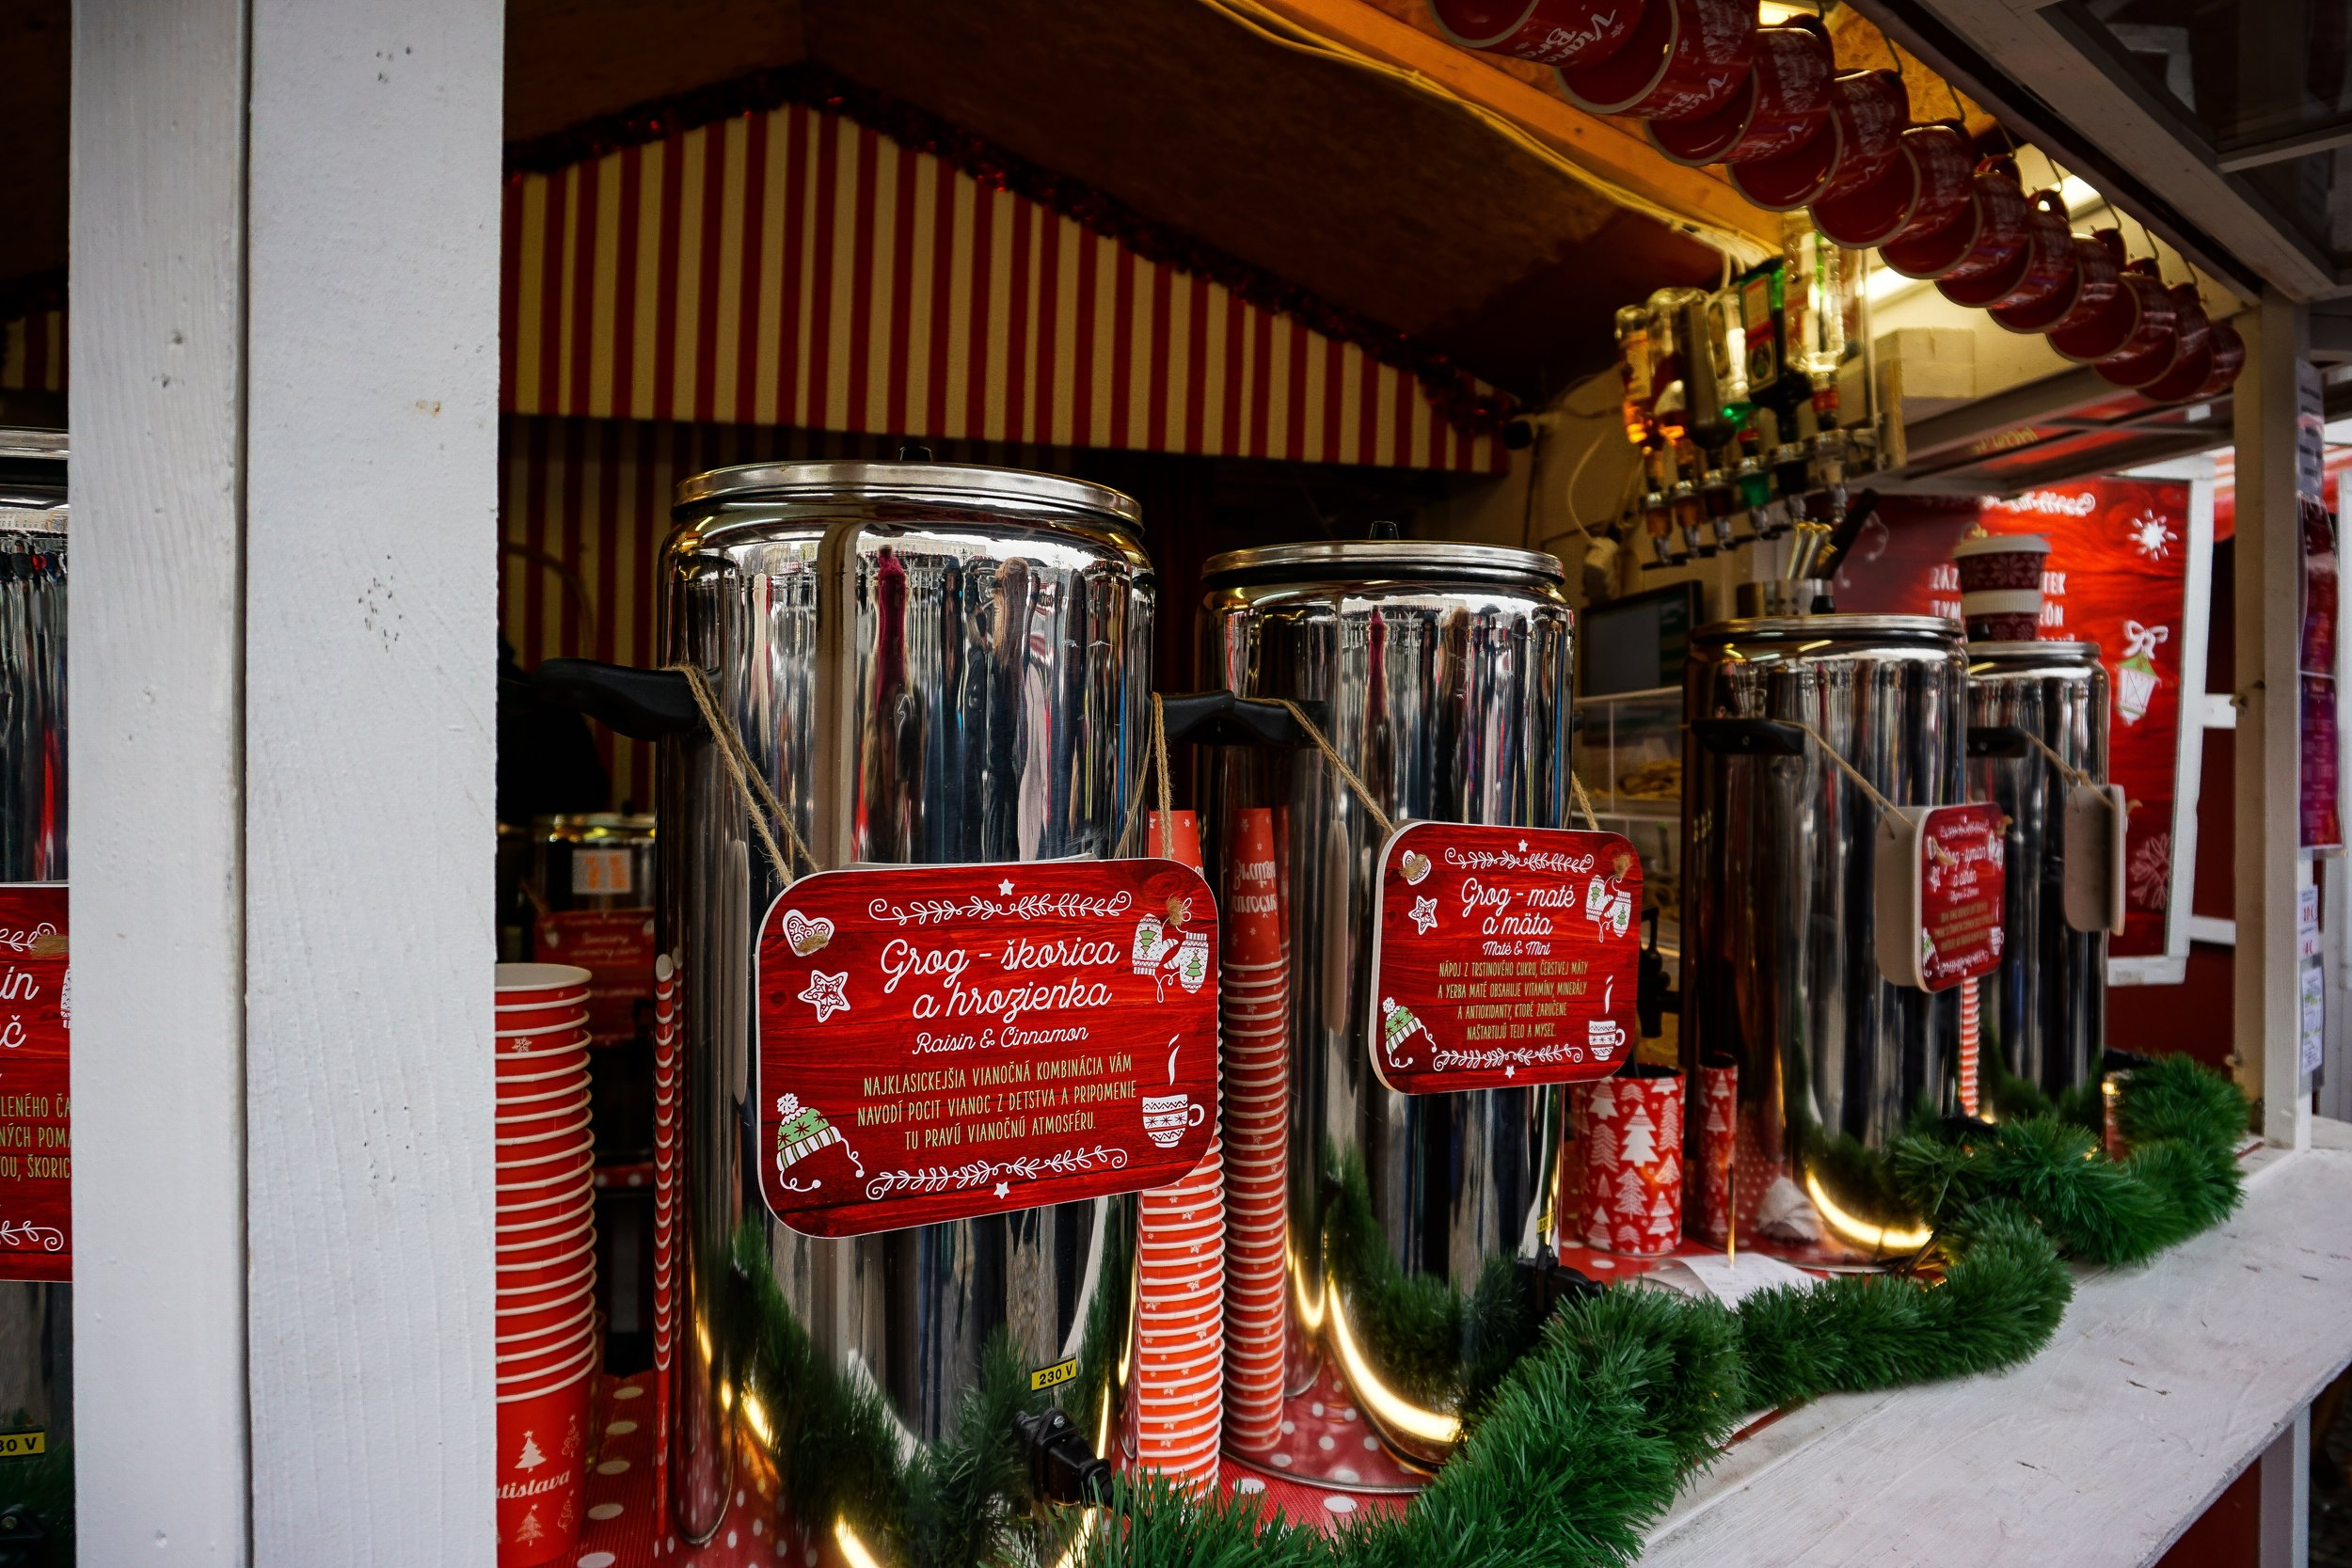 Mulled wine, grog, punč - whatever you want, the markets have it!